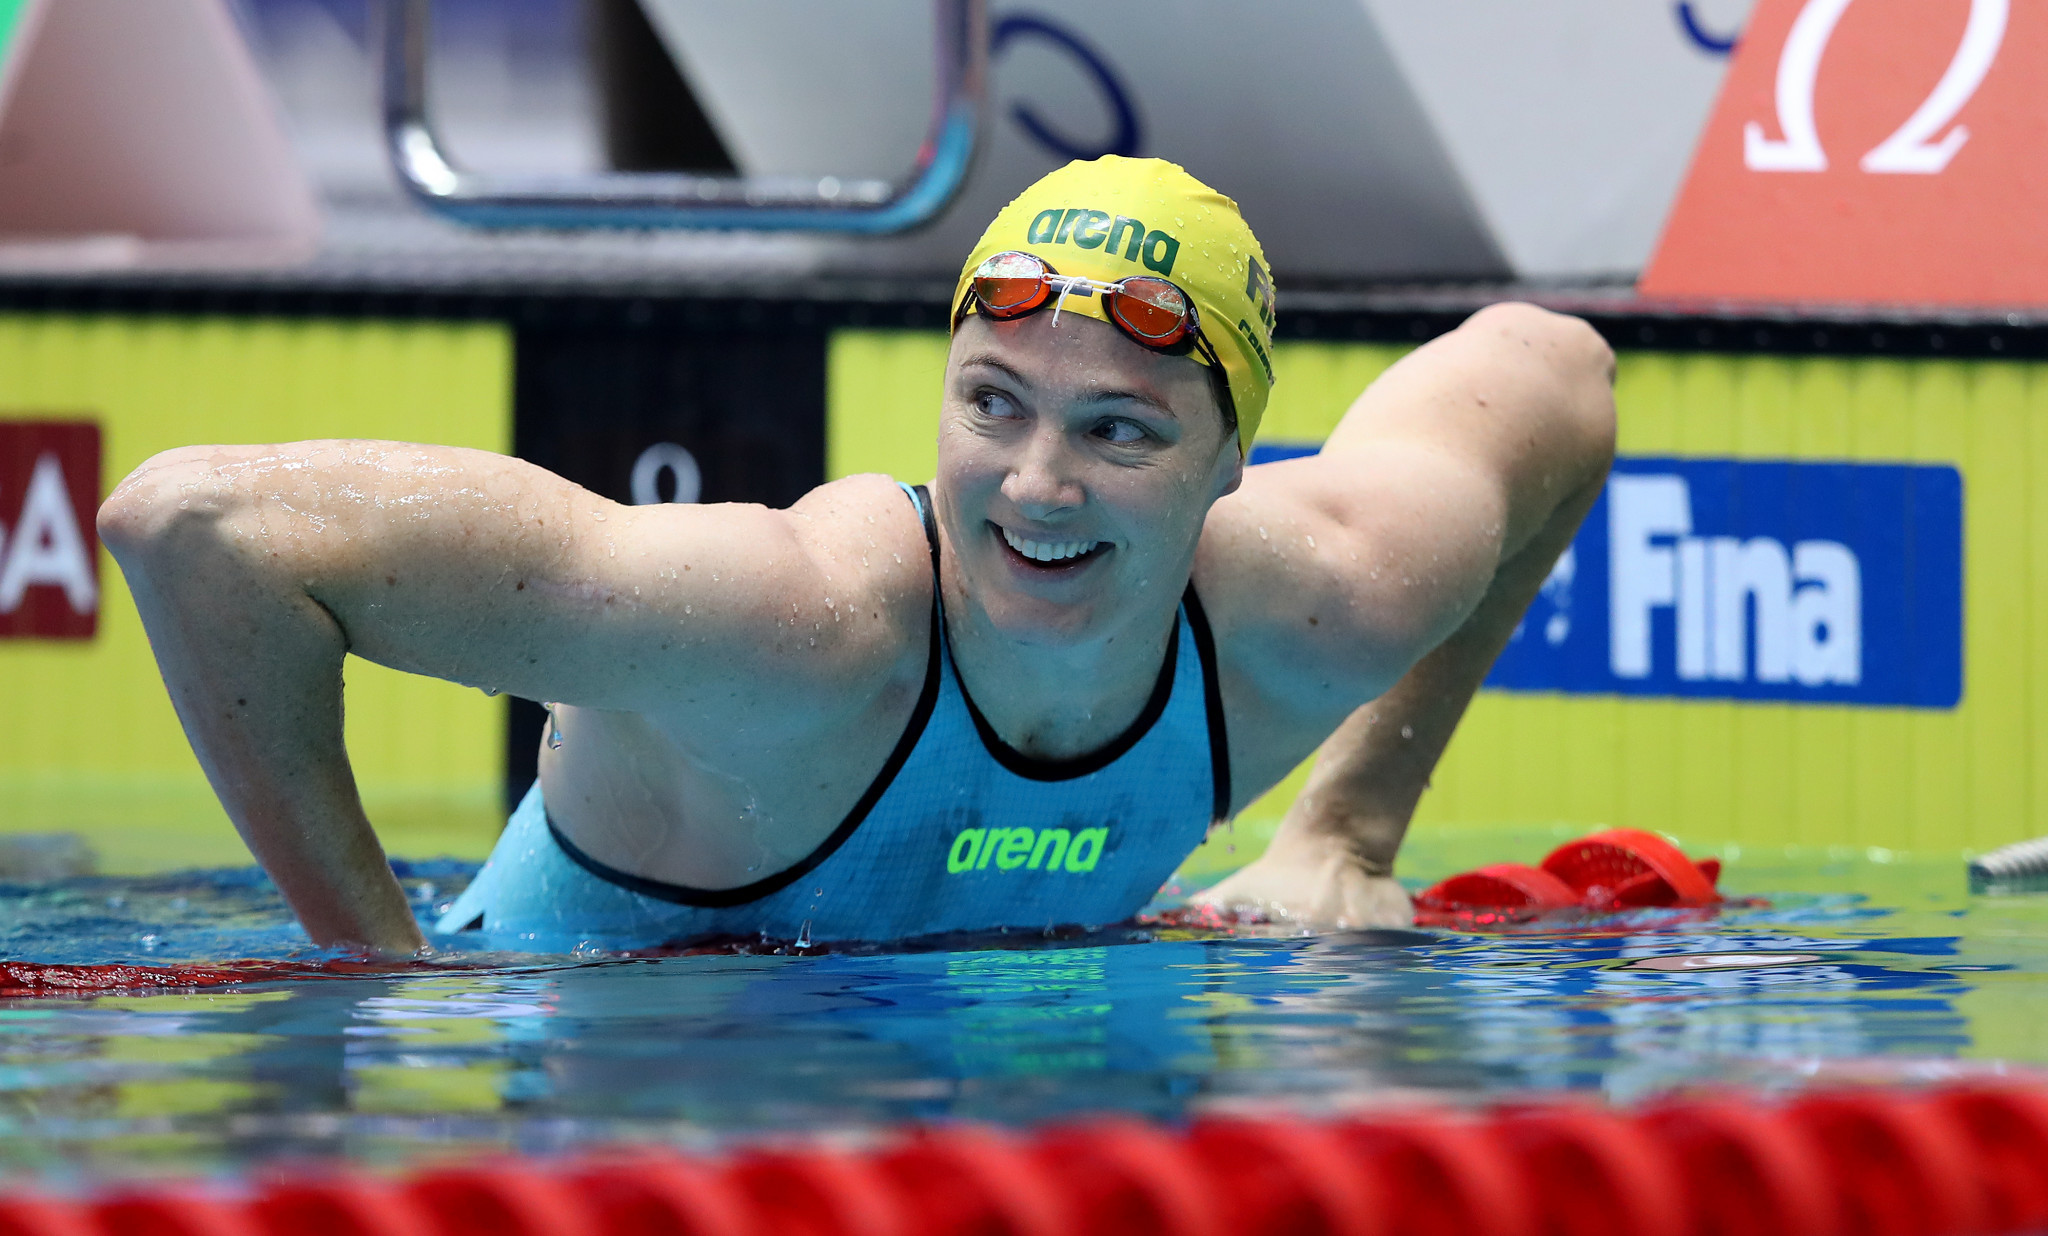 Australian swimmer Cate Campbell has been critical of the anti-doping system ©Getty Images